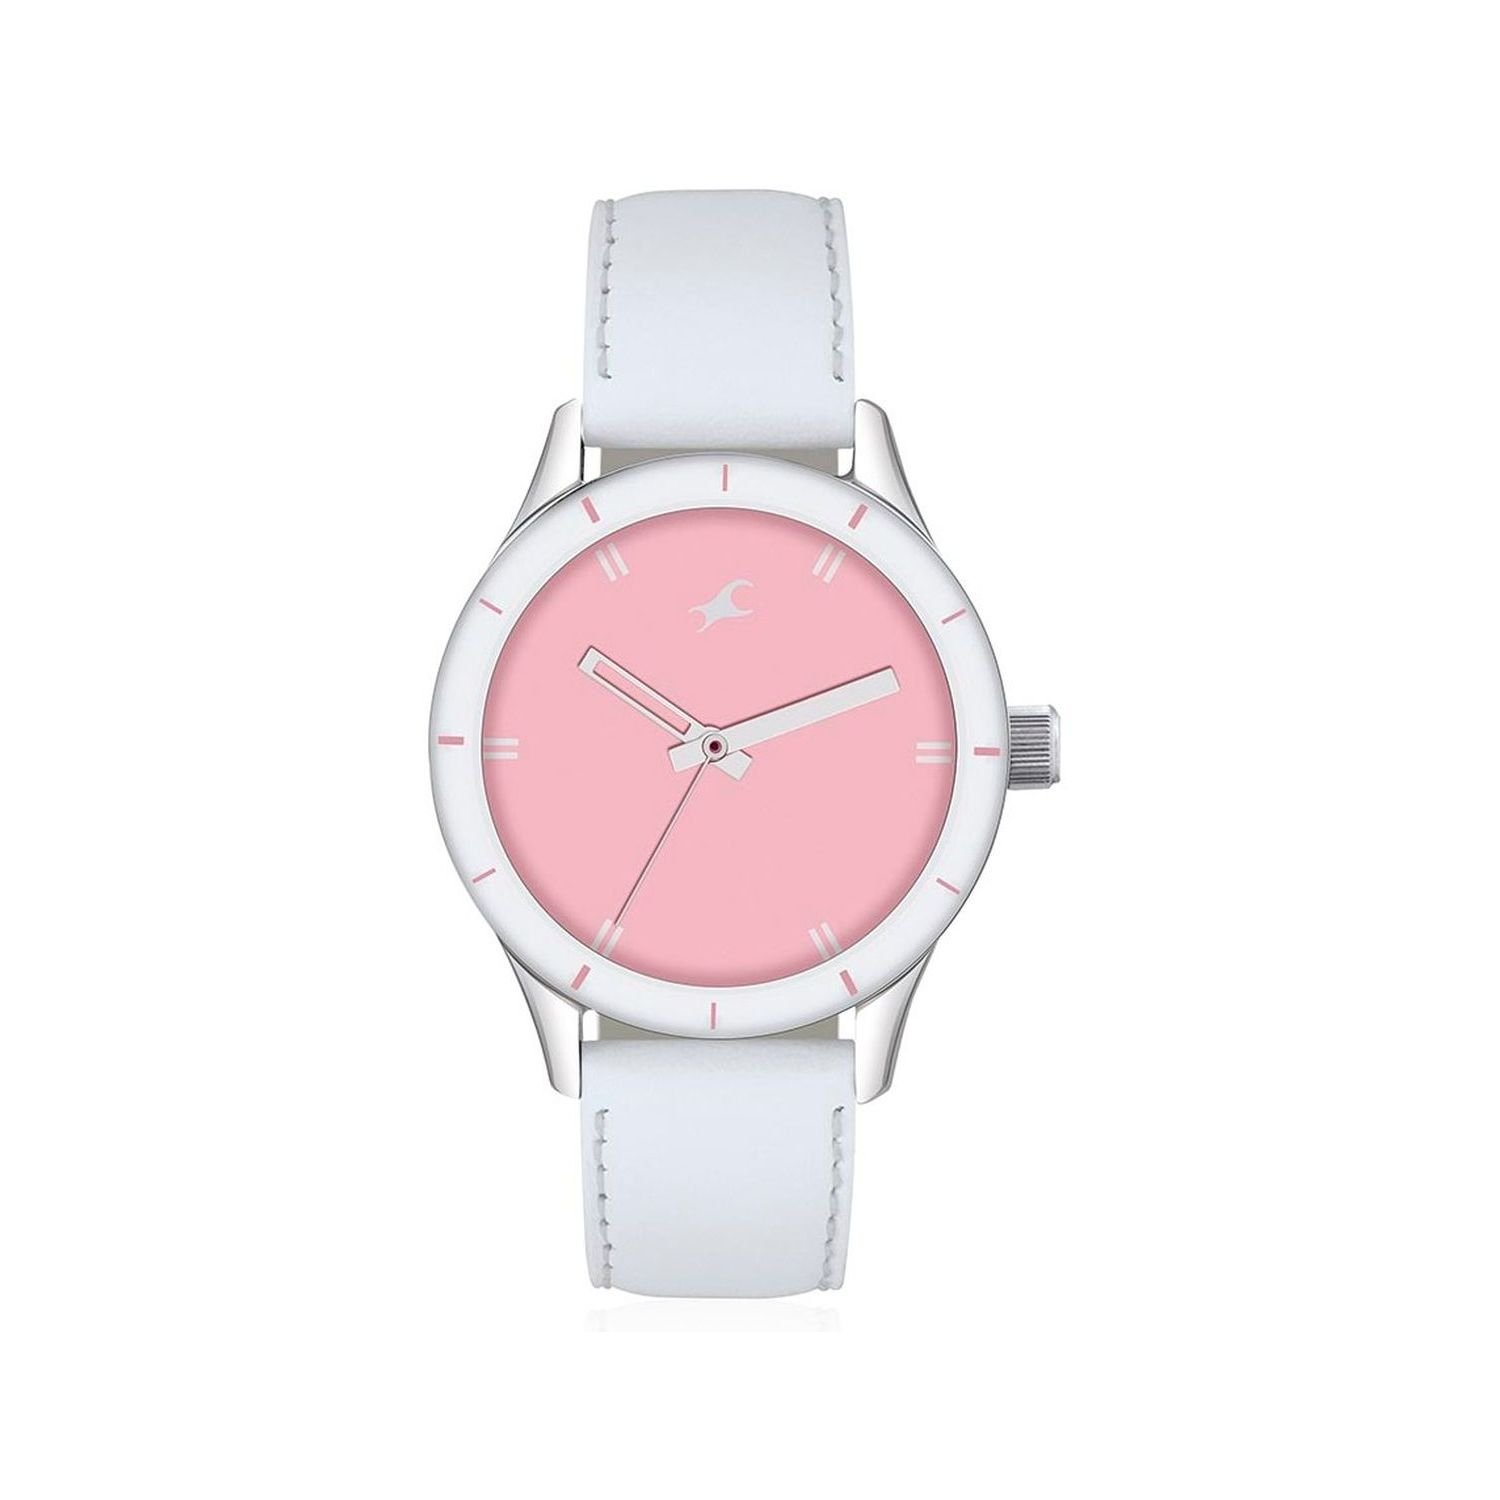 surfstitch womens watch beach series baby pink colour watches accessories g